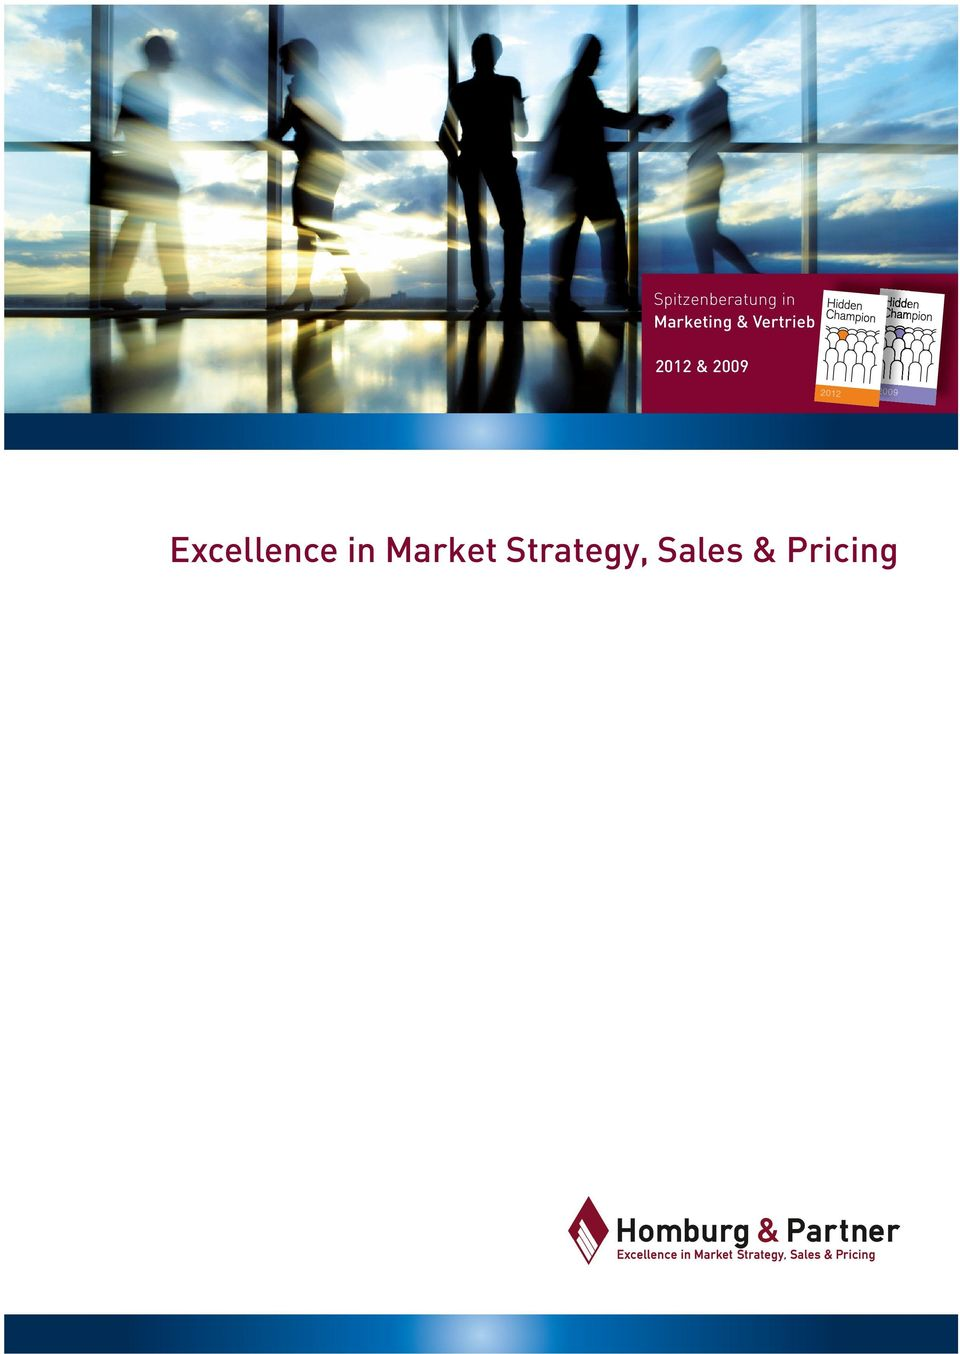 Excellence in Market Strategy, Sales